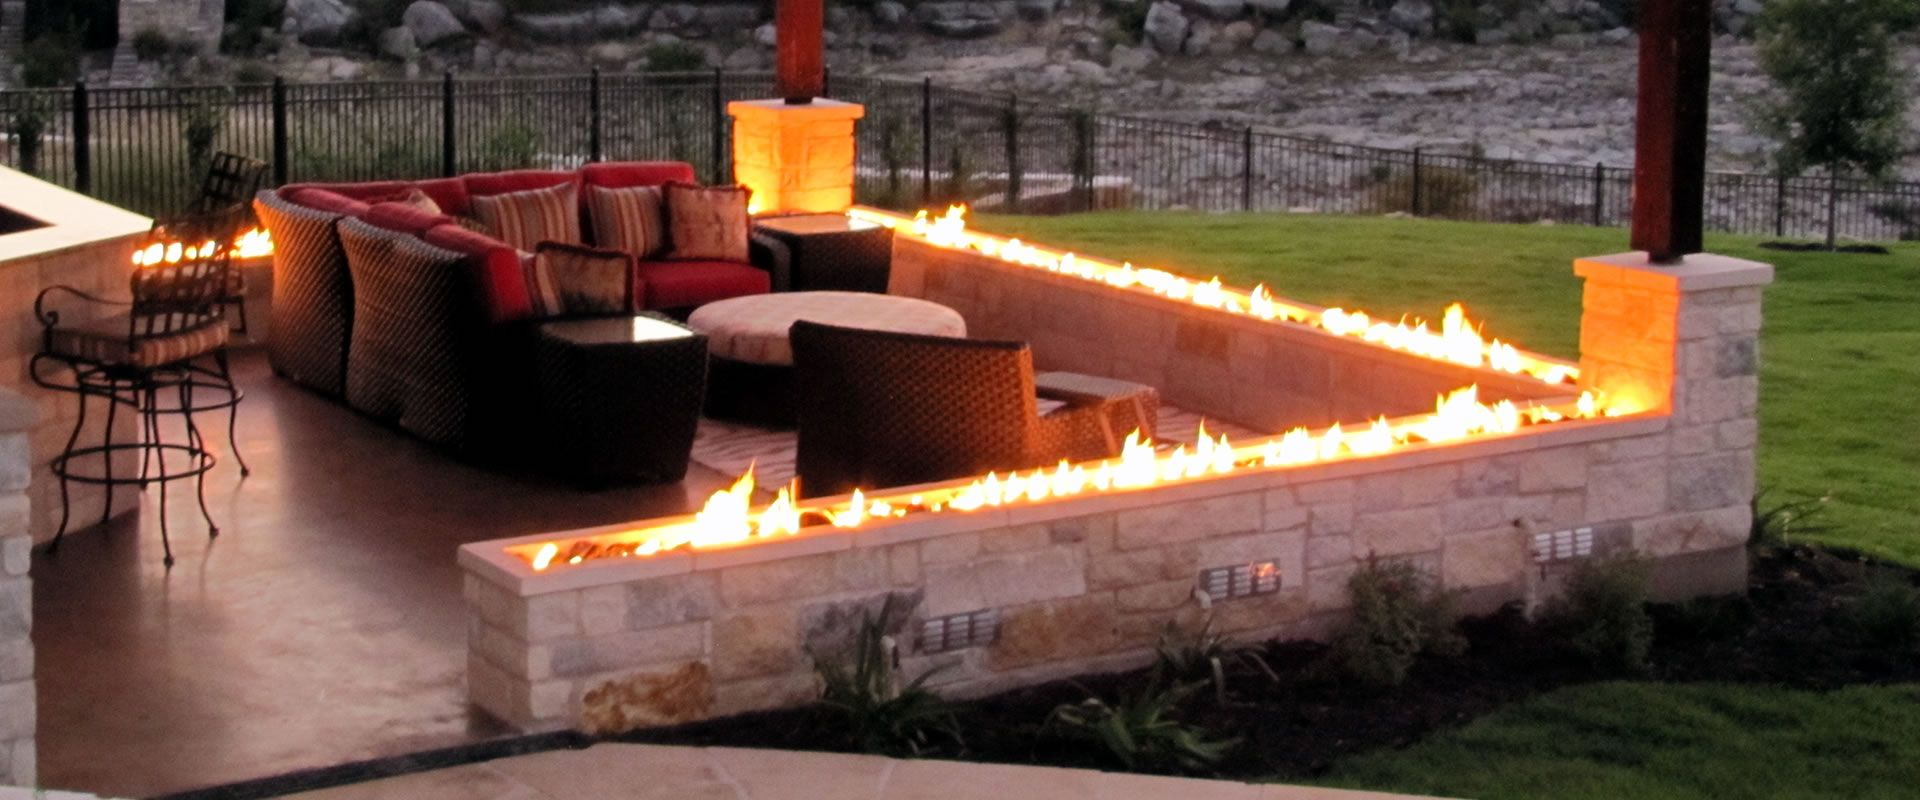 When You Are Looking At Diffe Fire Features Will See Flame Of All Designs For Your Pool Make Come To Life With